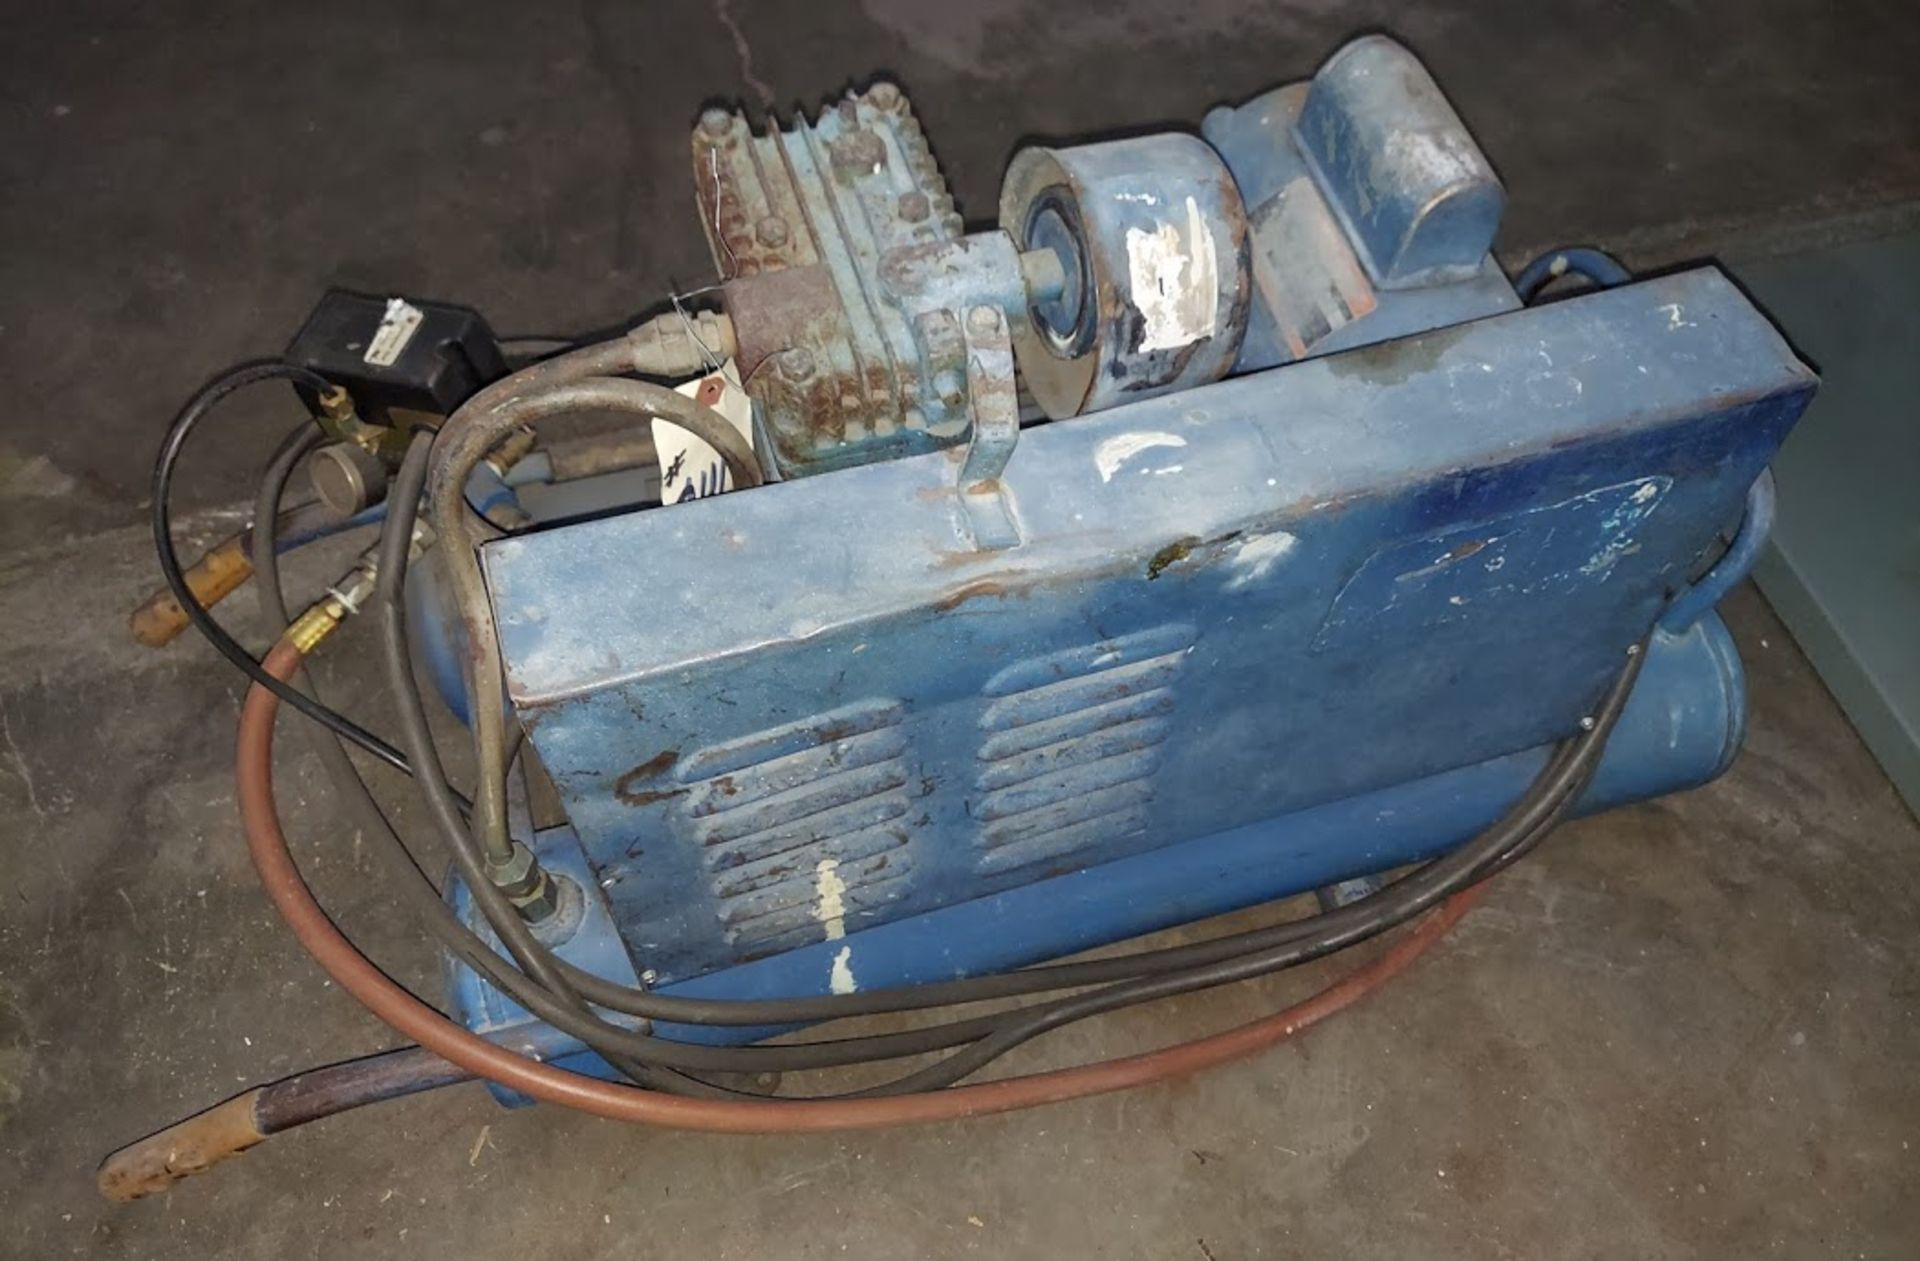 Emglo Electric Air Compressor, 1.5 HP 115 Volts - Image 3 of 3